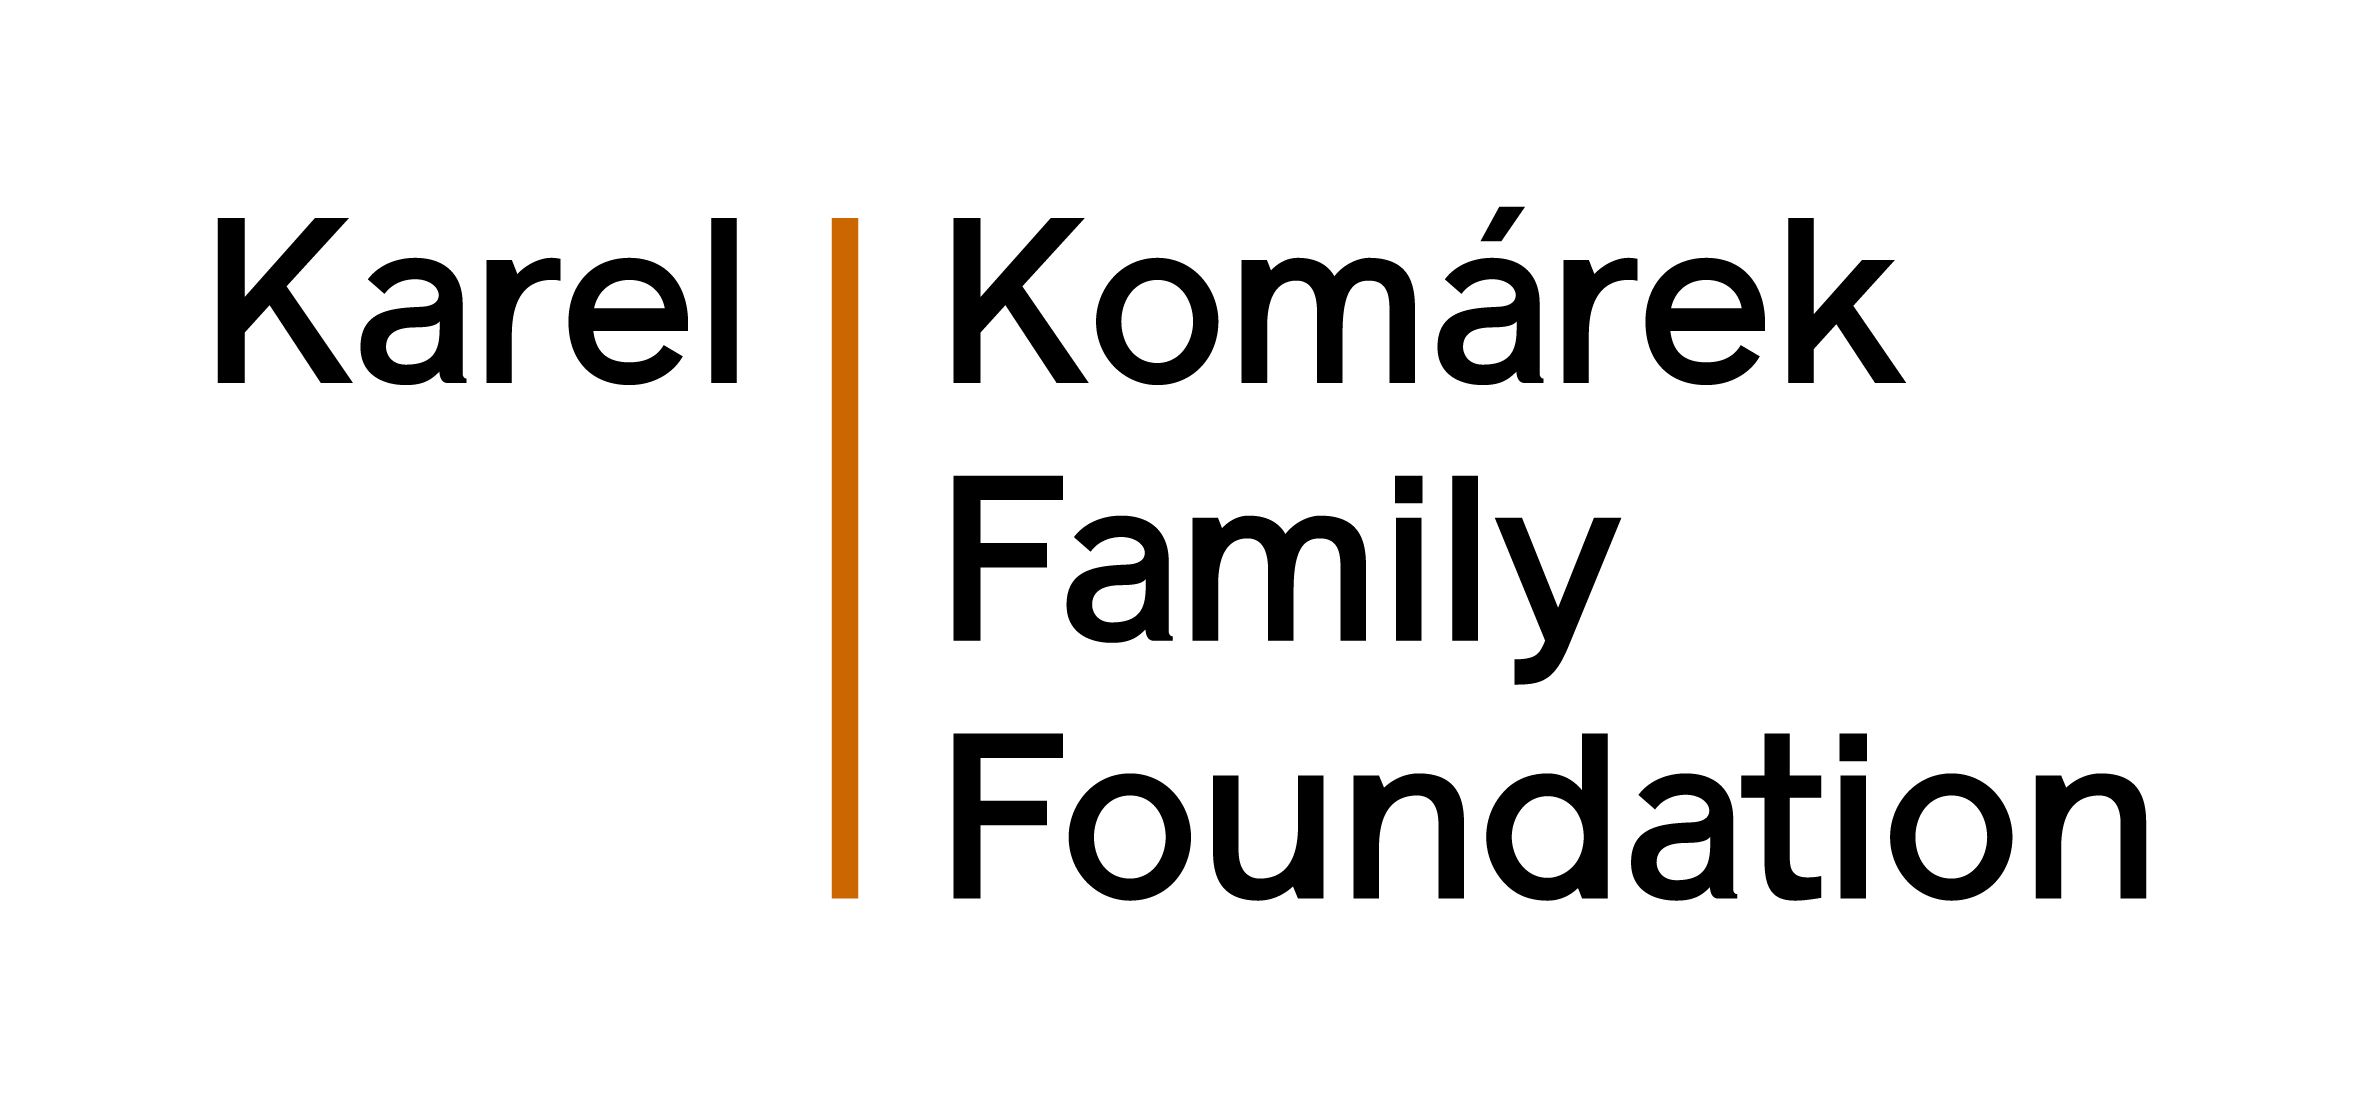 Karel Komárek Family Foundation